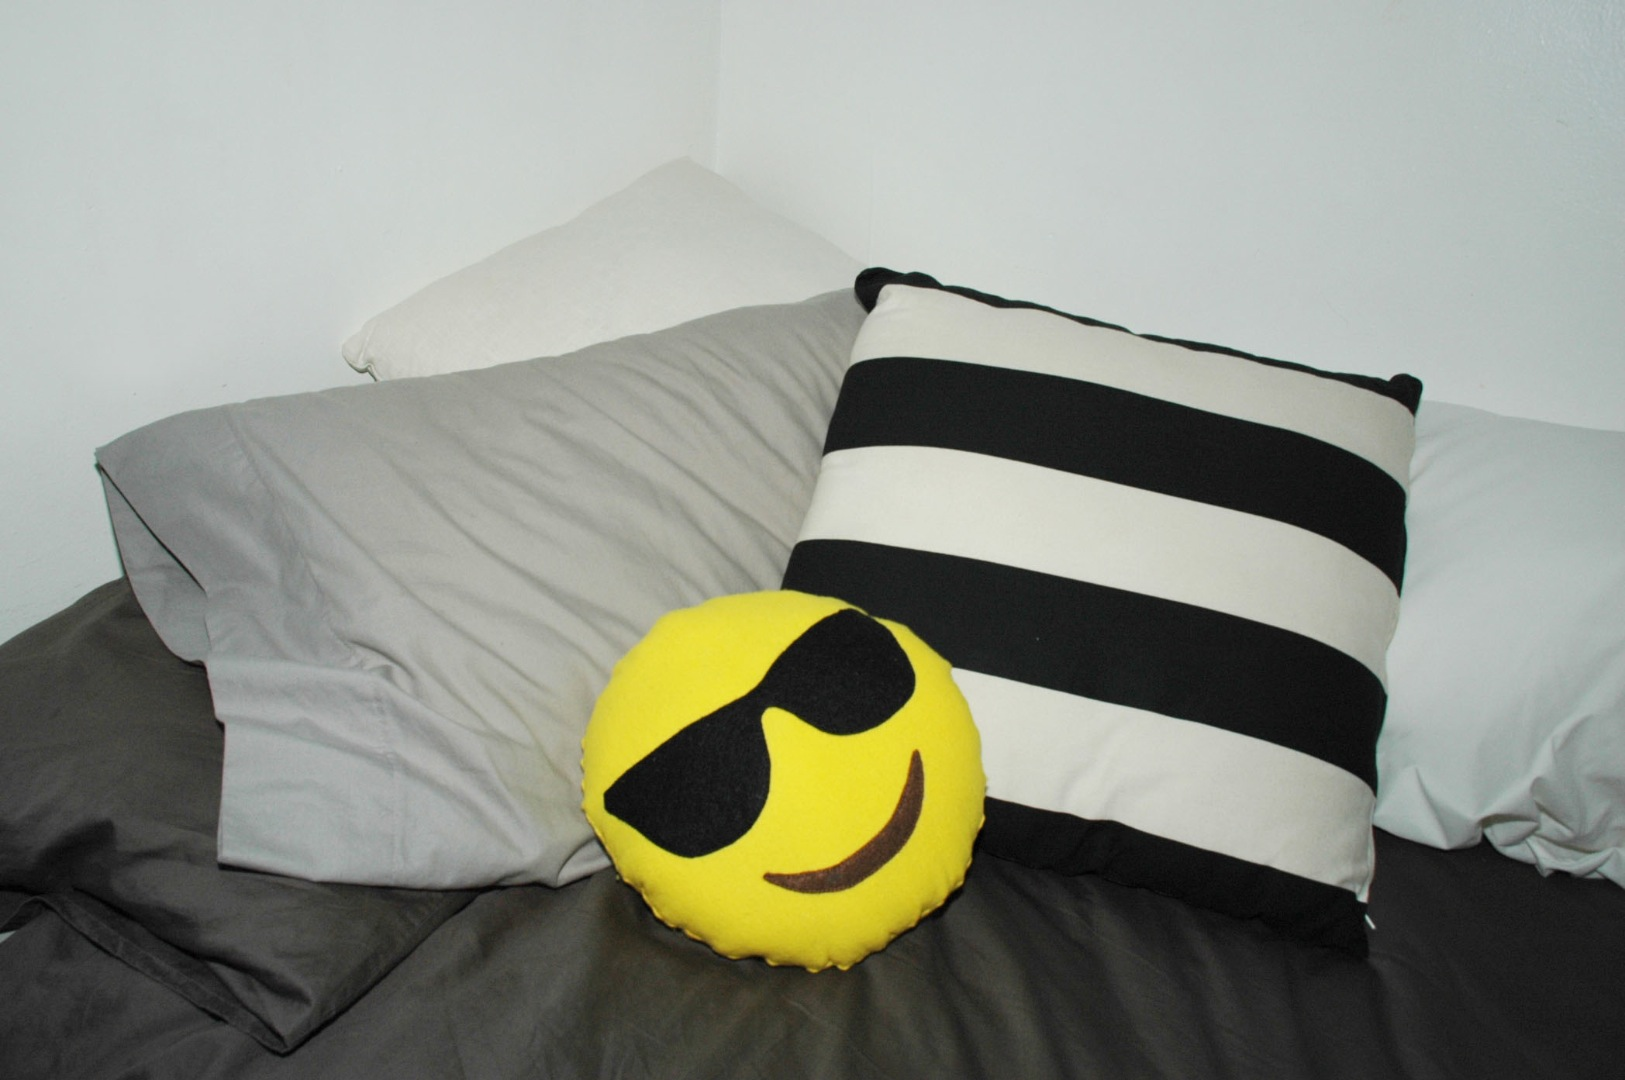 make your own emoji pillow 10 steps